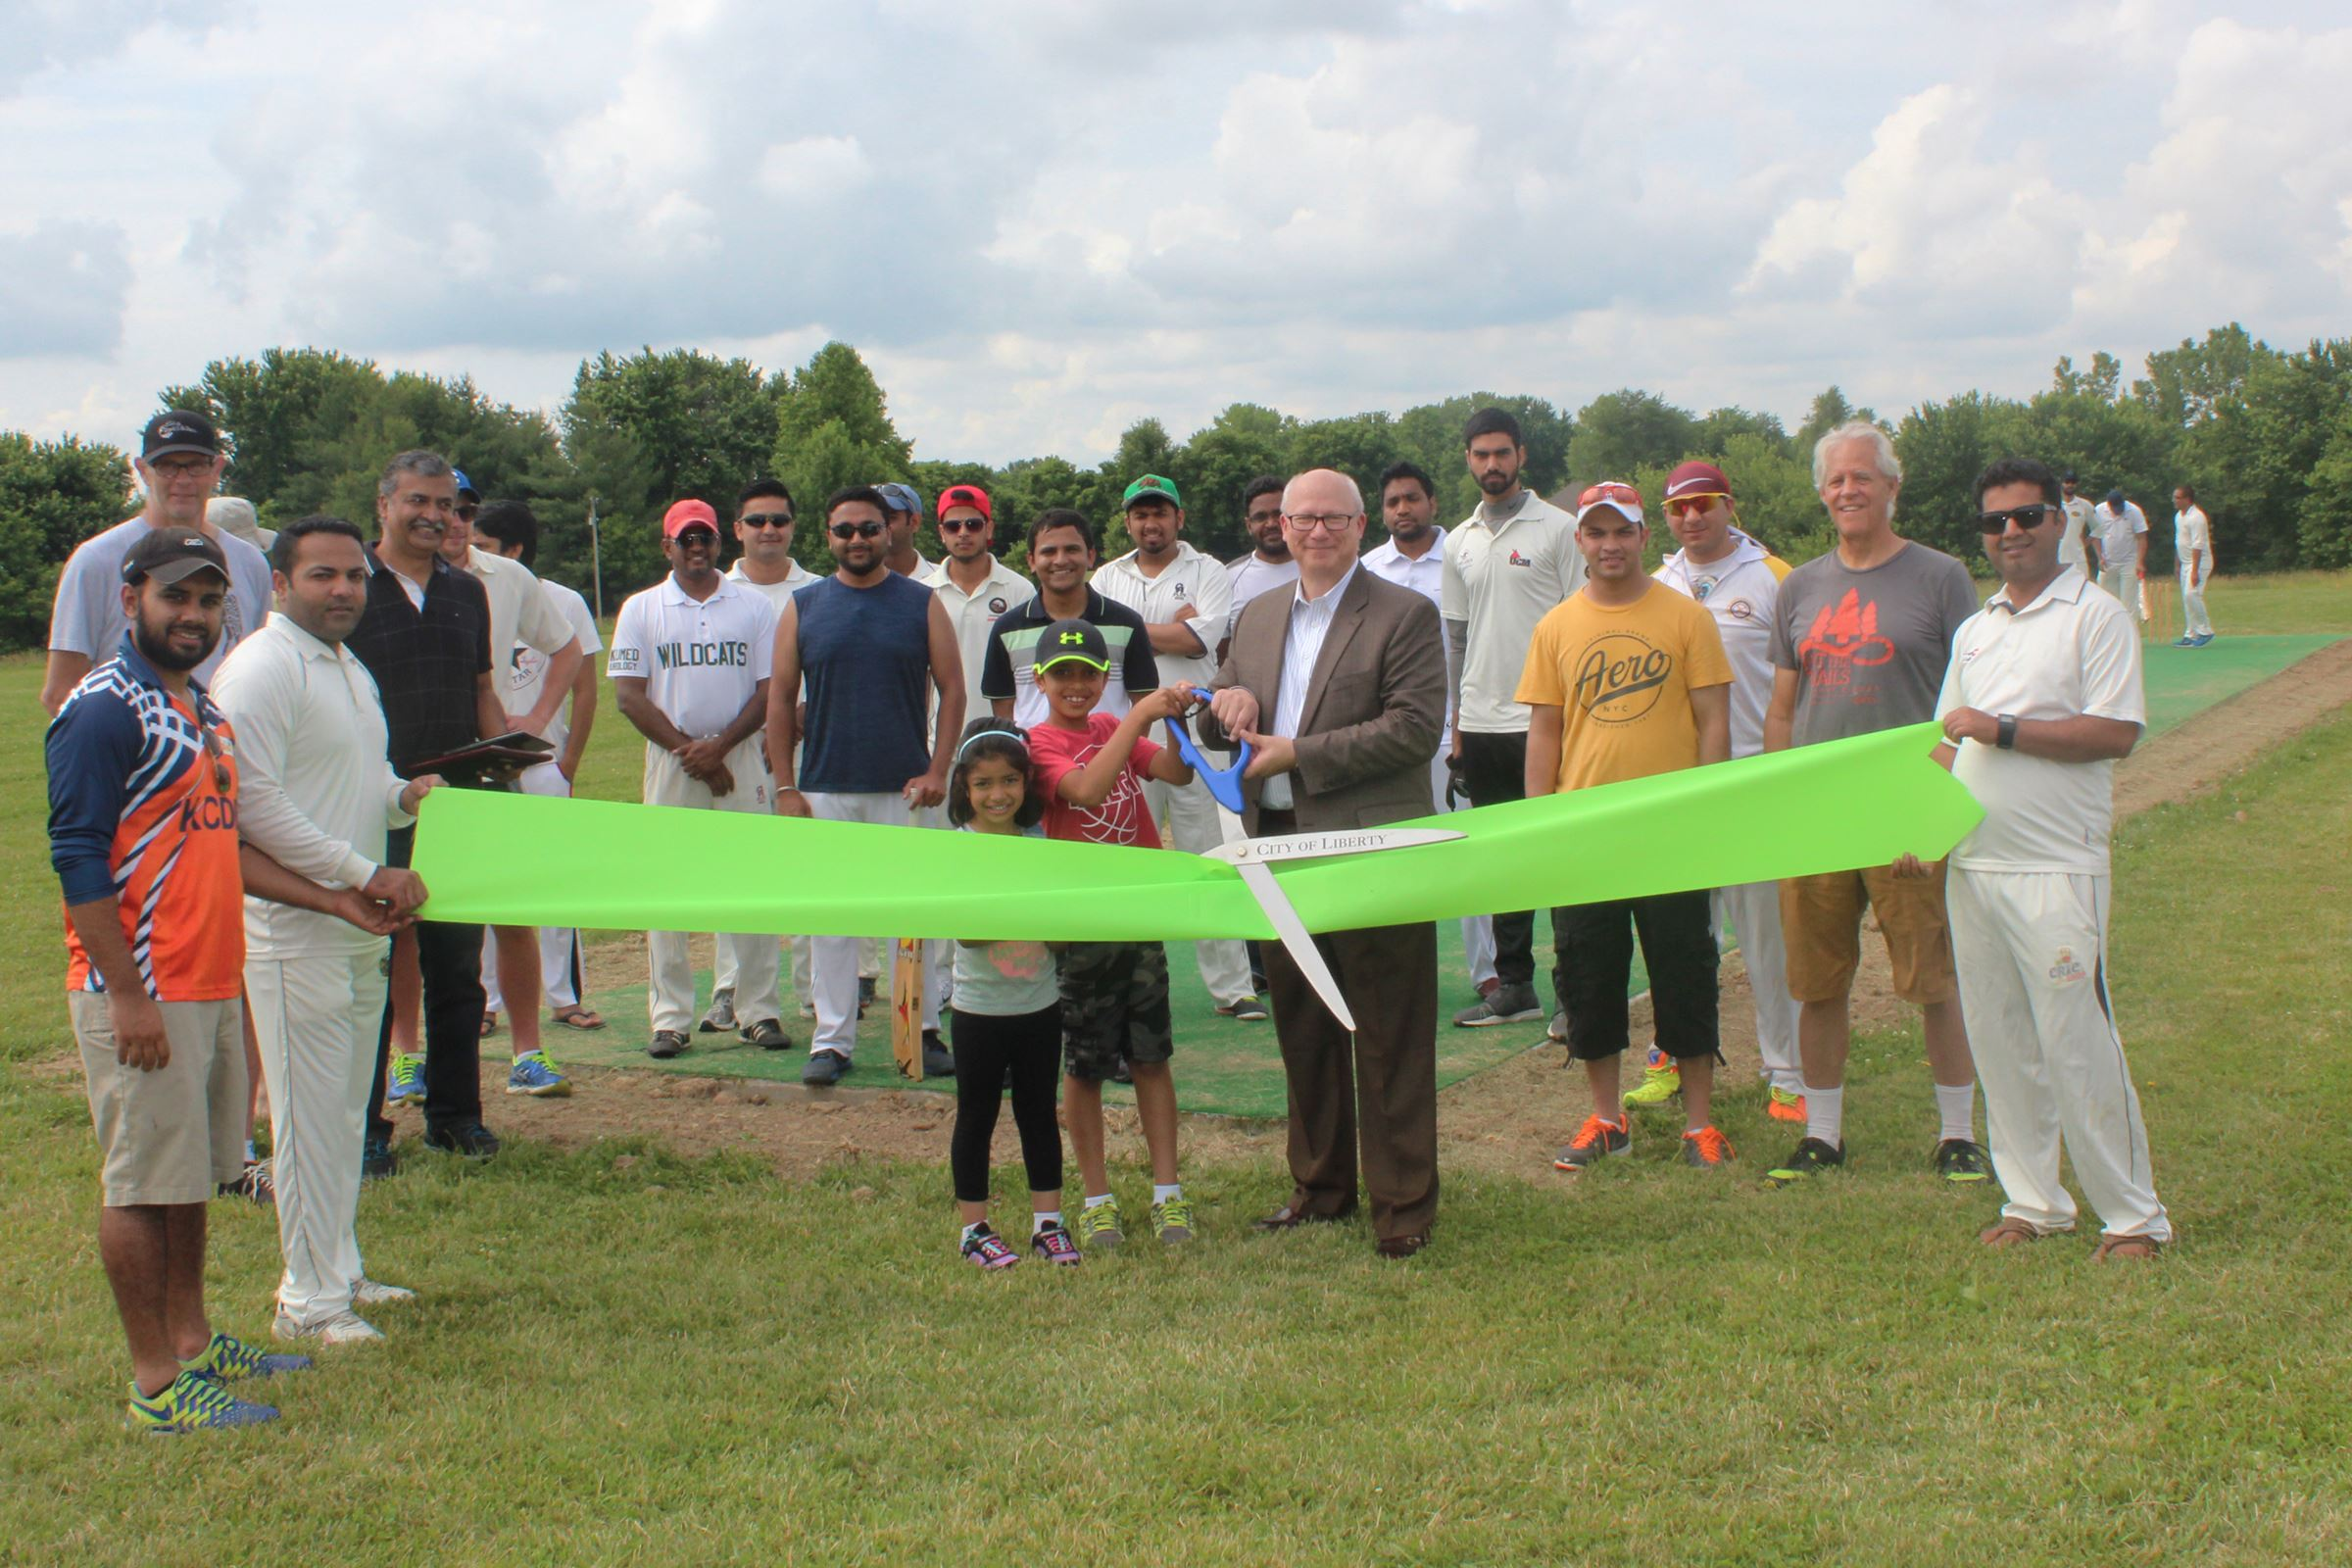 Stocksdale Park Cricket Pitch ribbon cutting